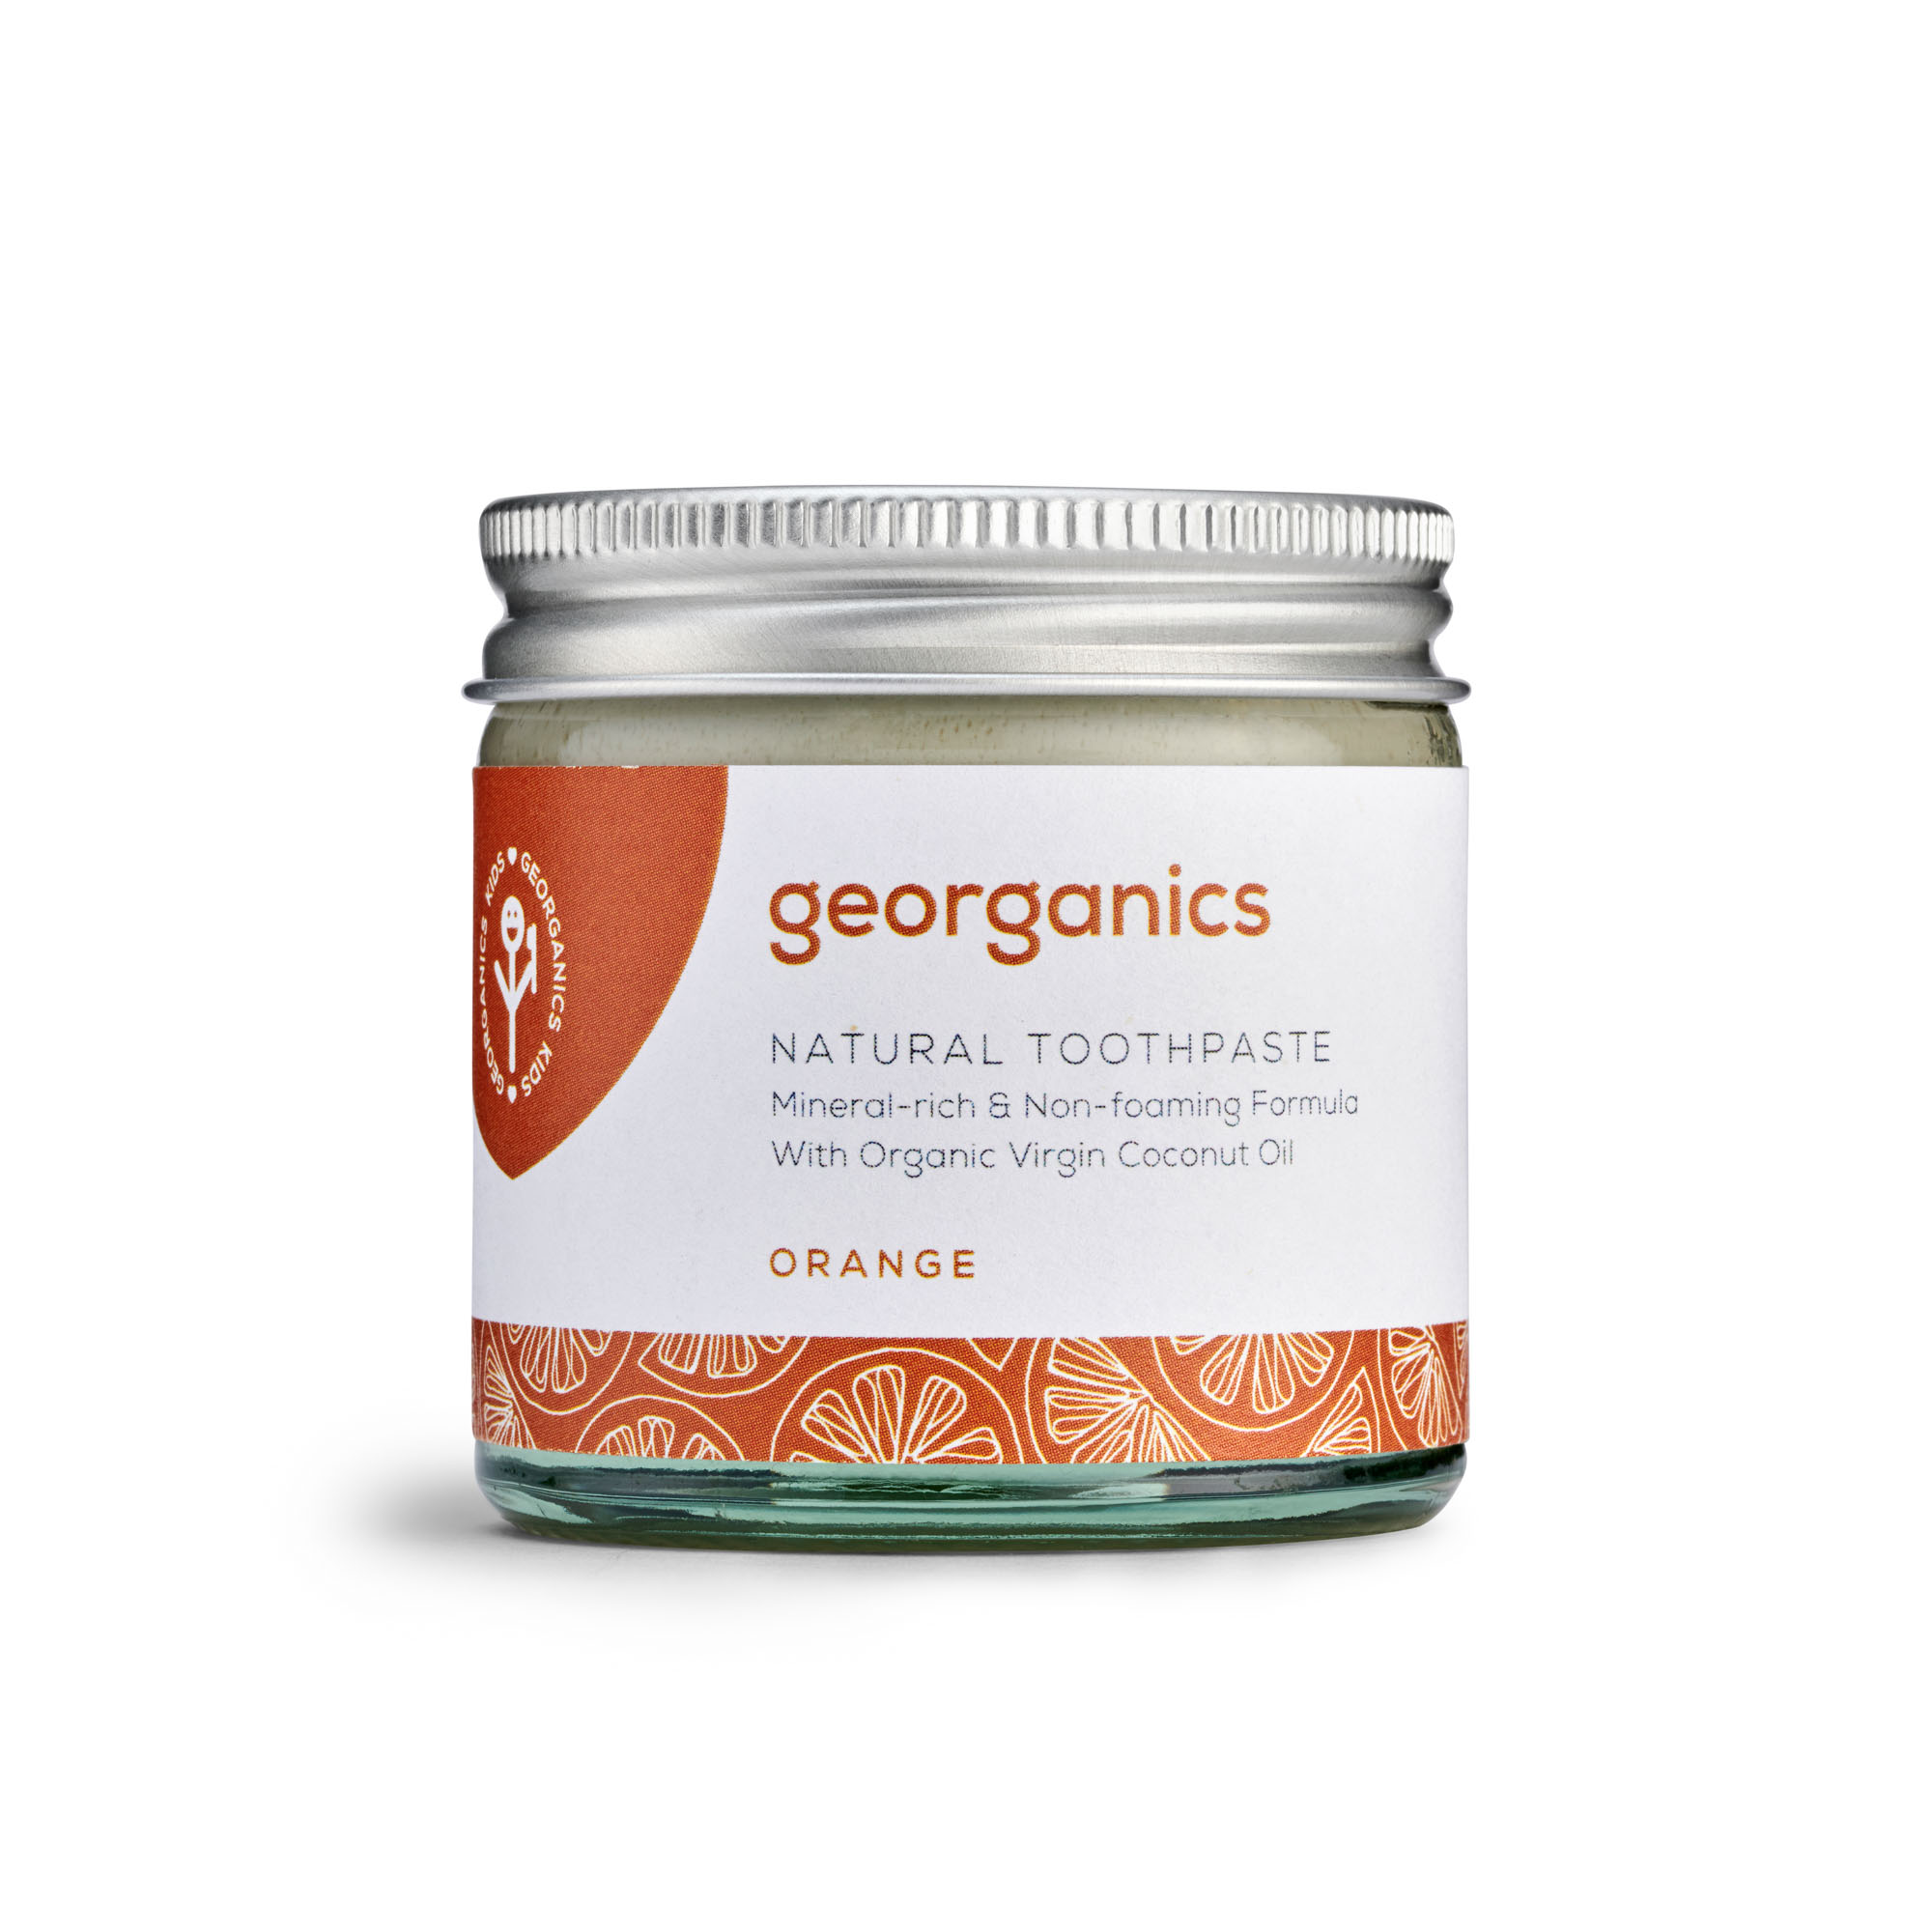 Orange Toothpaste, (Fluoride Free) by Georganics